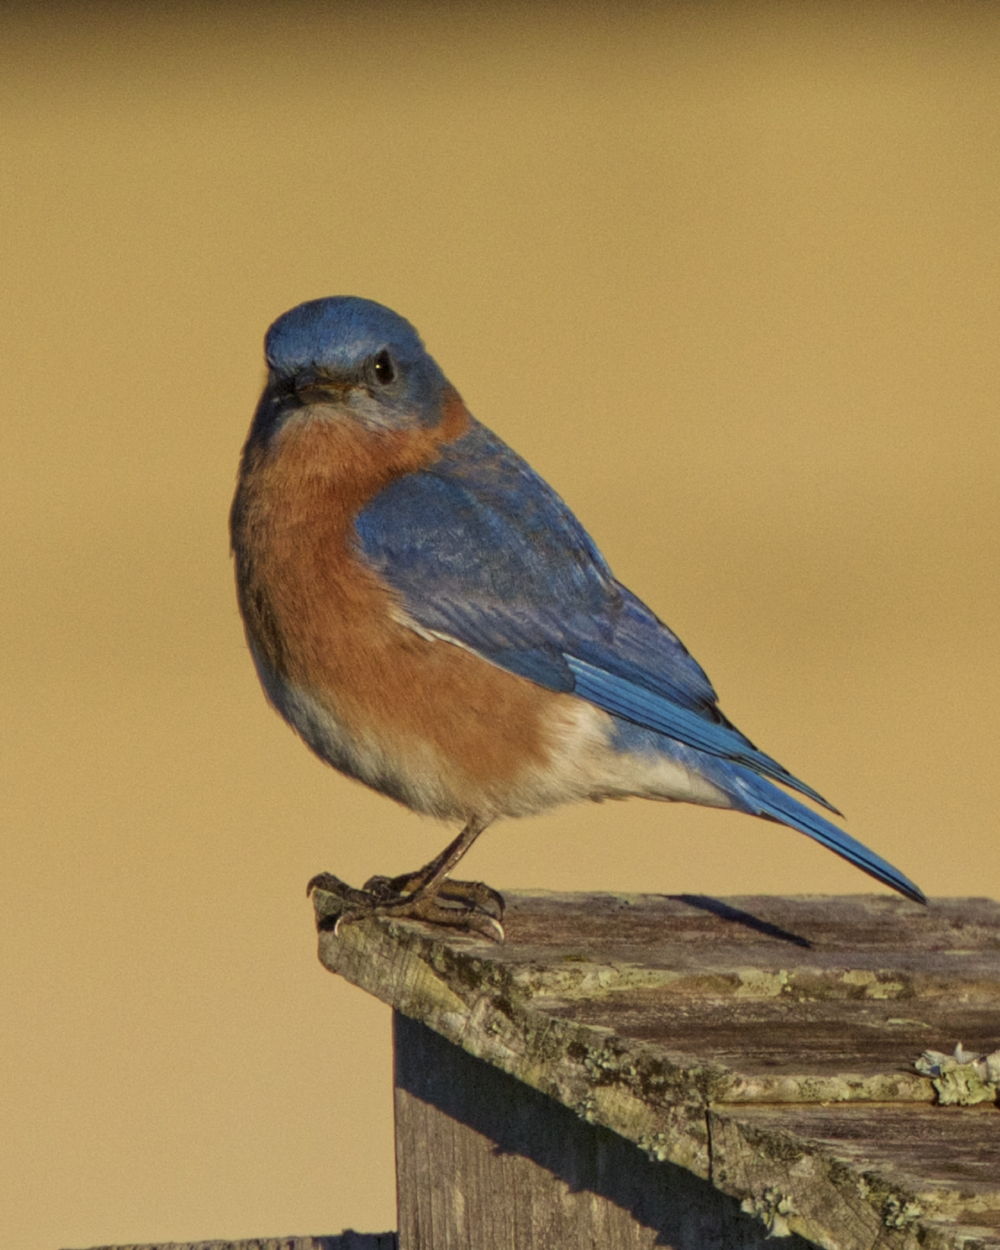 May the Bluebird of happiness shine on you this week..be blessed.